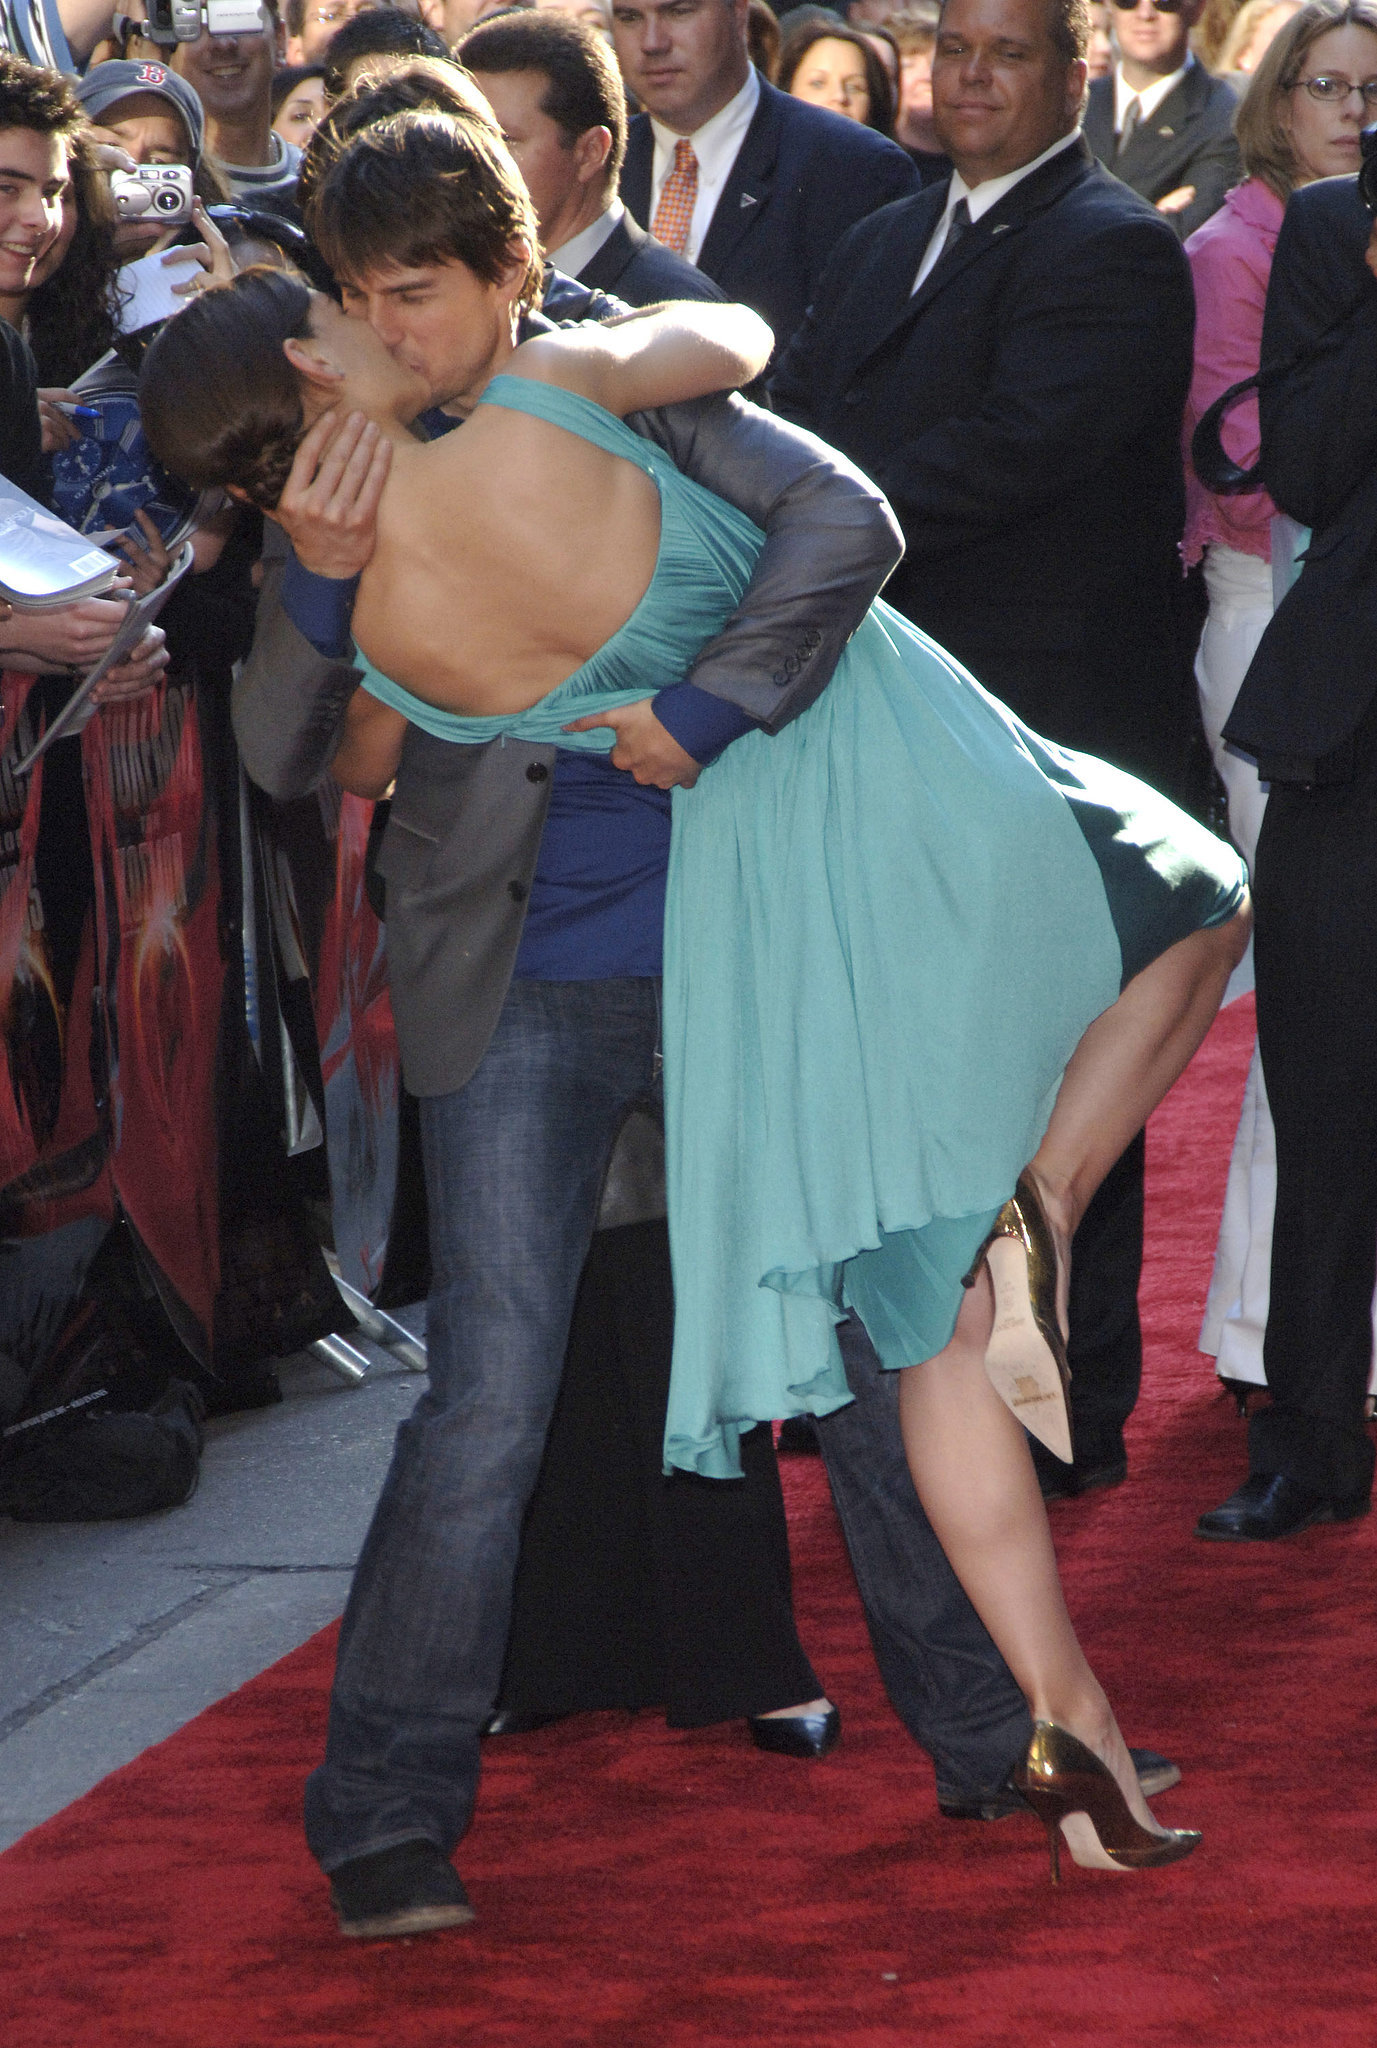 Tom Cruise dipped Katie Holmes on the red carpet in June 2005 at the NYC War of the Worlds premiere.